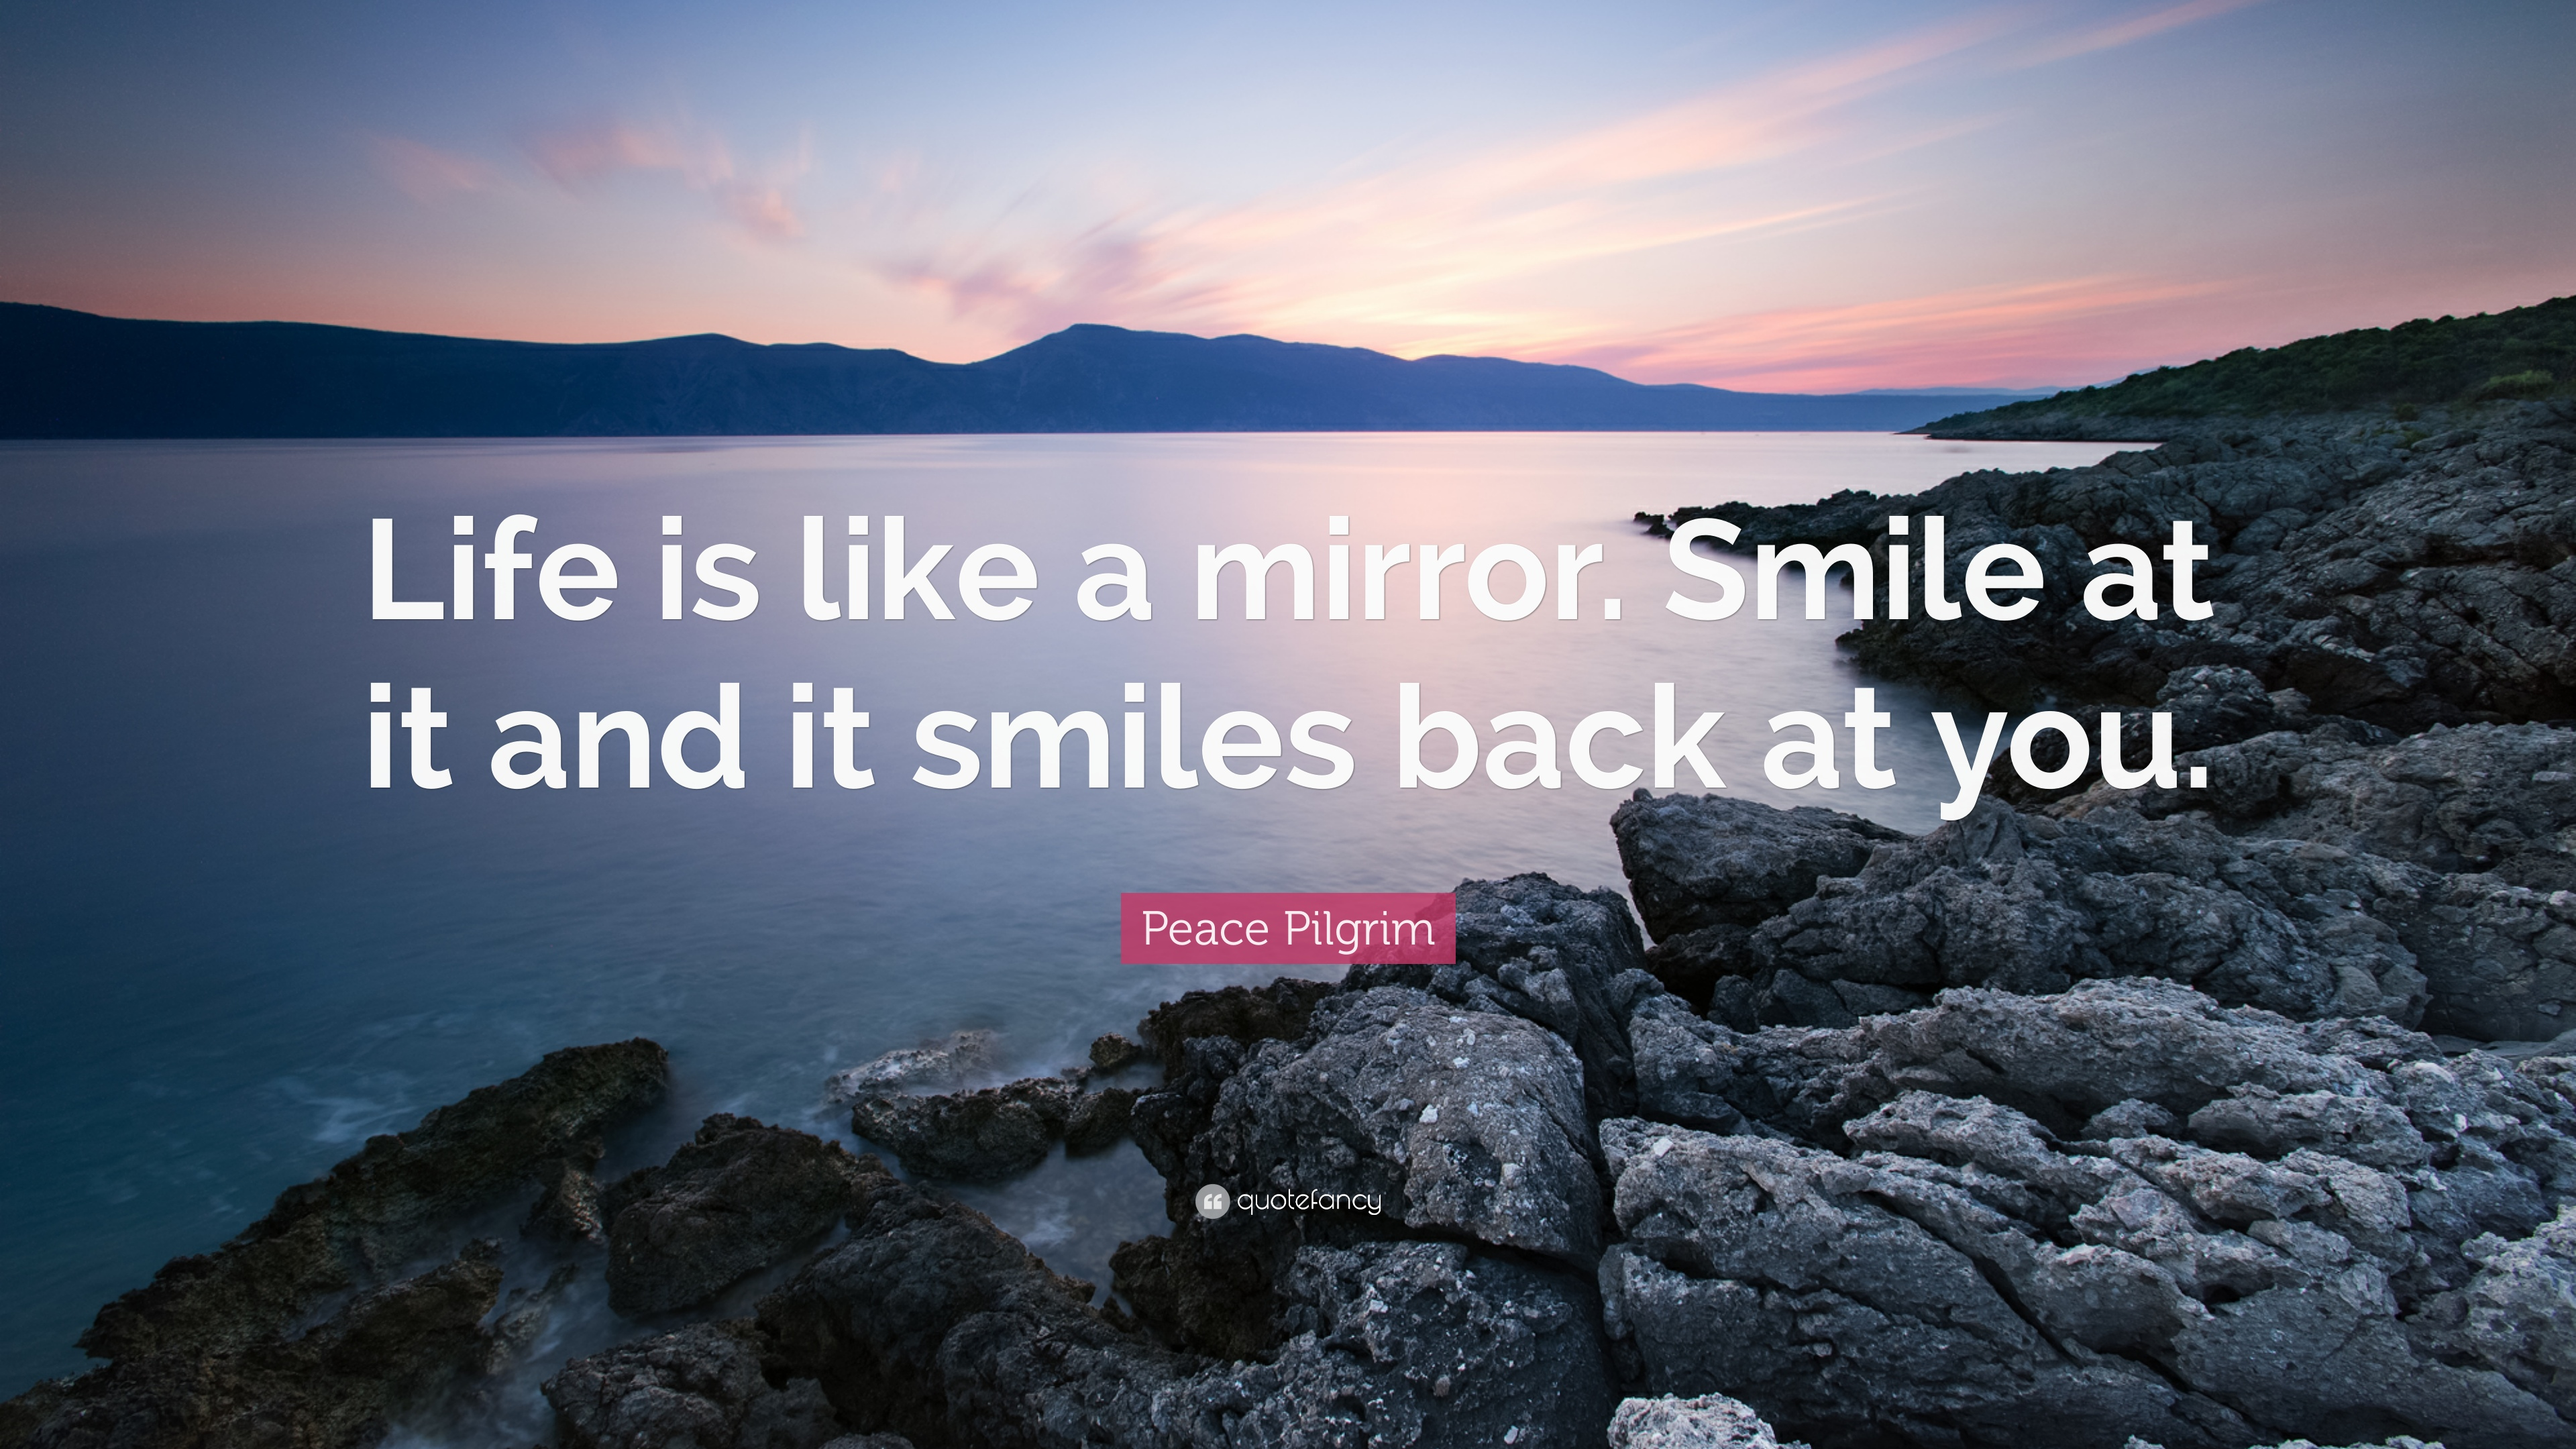 Peace pilgrim quote life is like a mirror smile at it and it peace pilgrim quote life is like a mirror smile at it and it stopboris Image collections